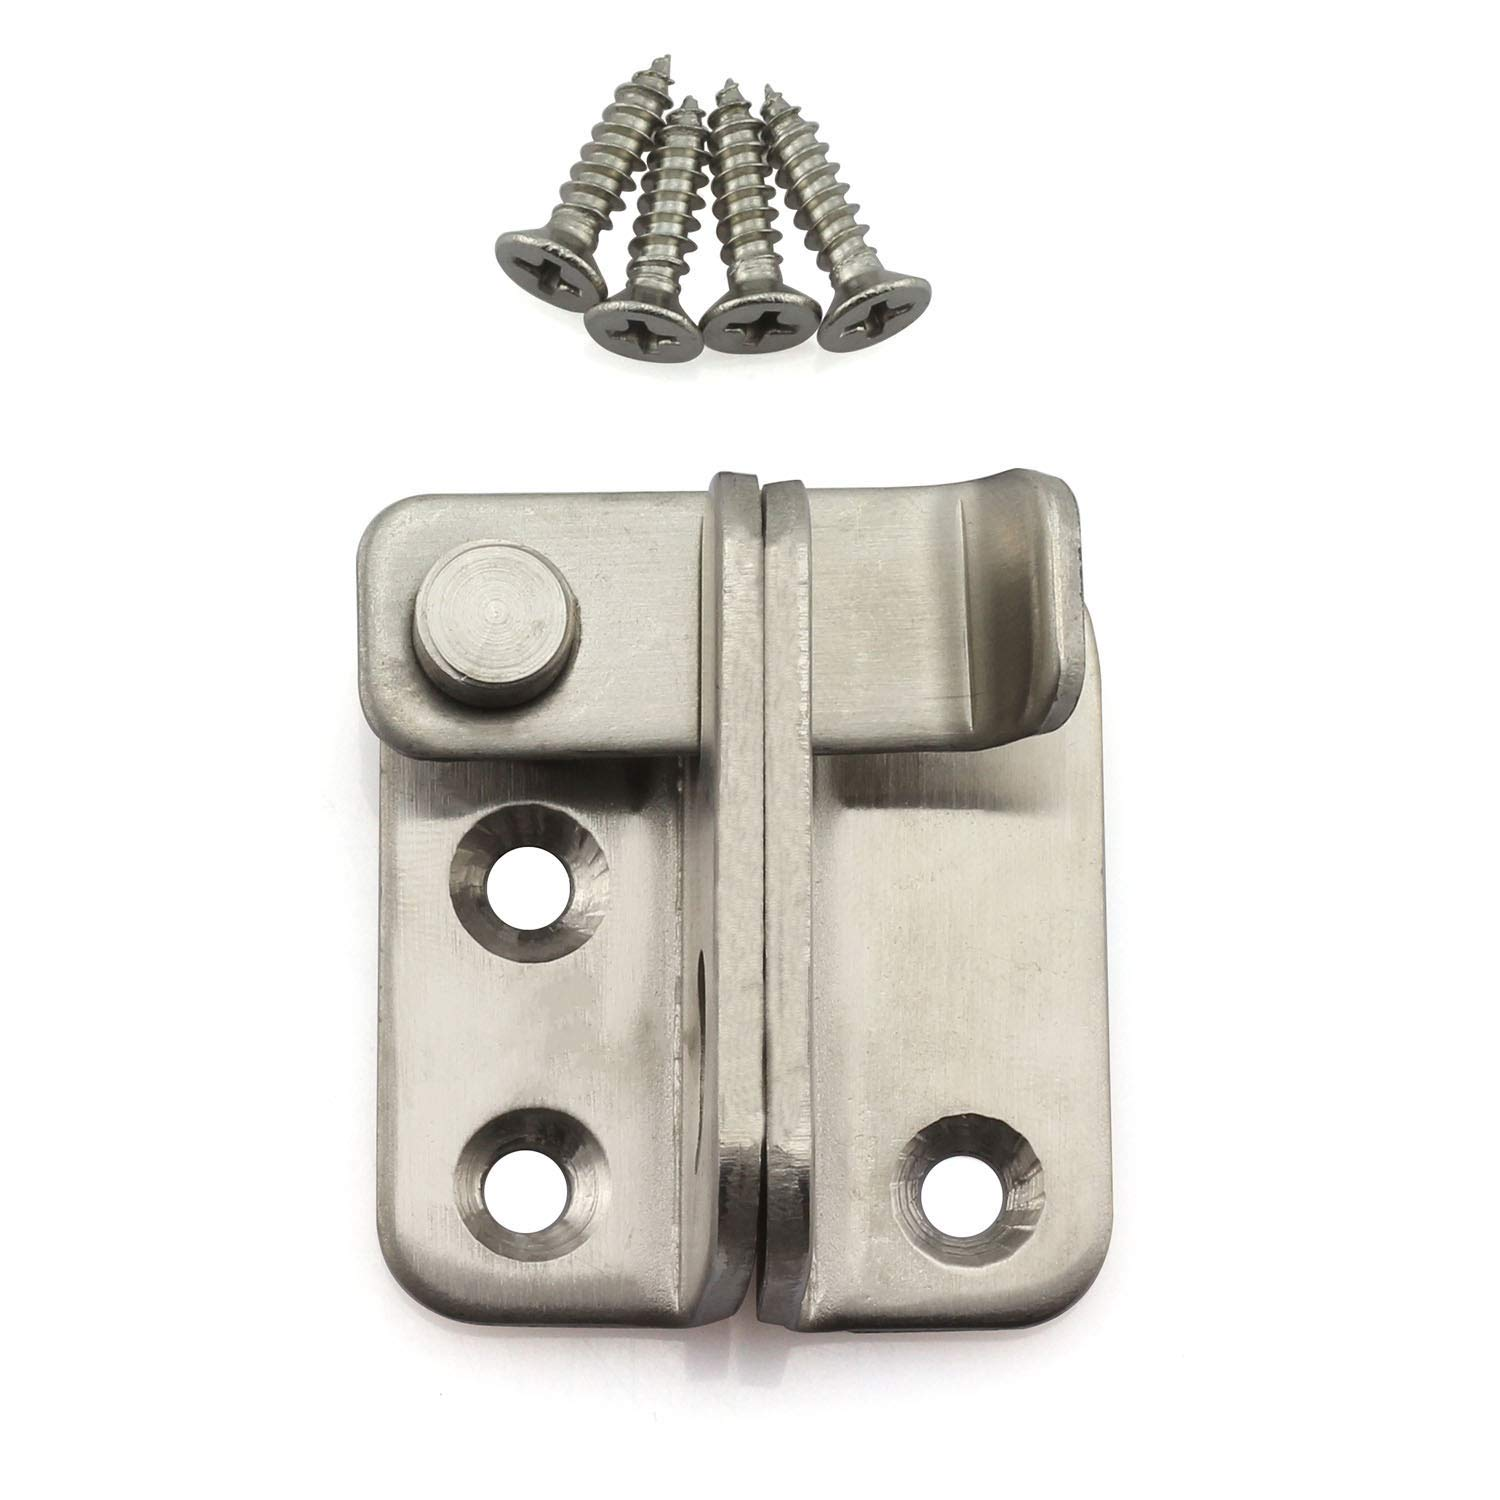 Tegg 1-Pack 4 Inch Padlock Door Hasp Latch Stainless Steel Safety Security Home Anti-Theft Guard Furniture Hasp Staple Hardware